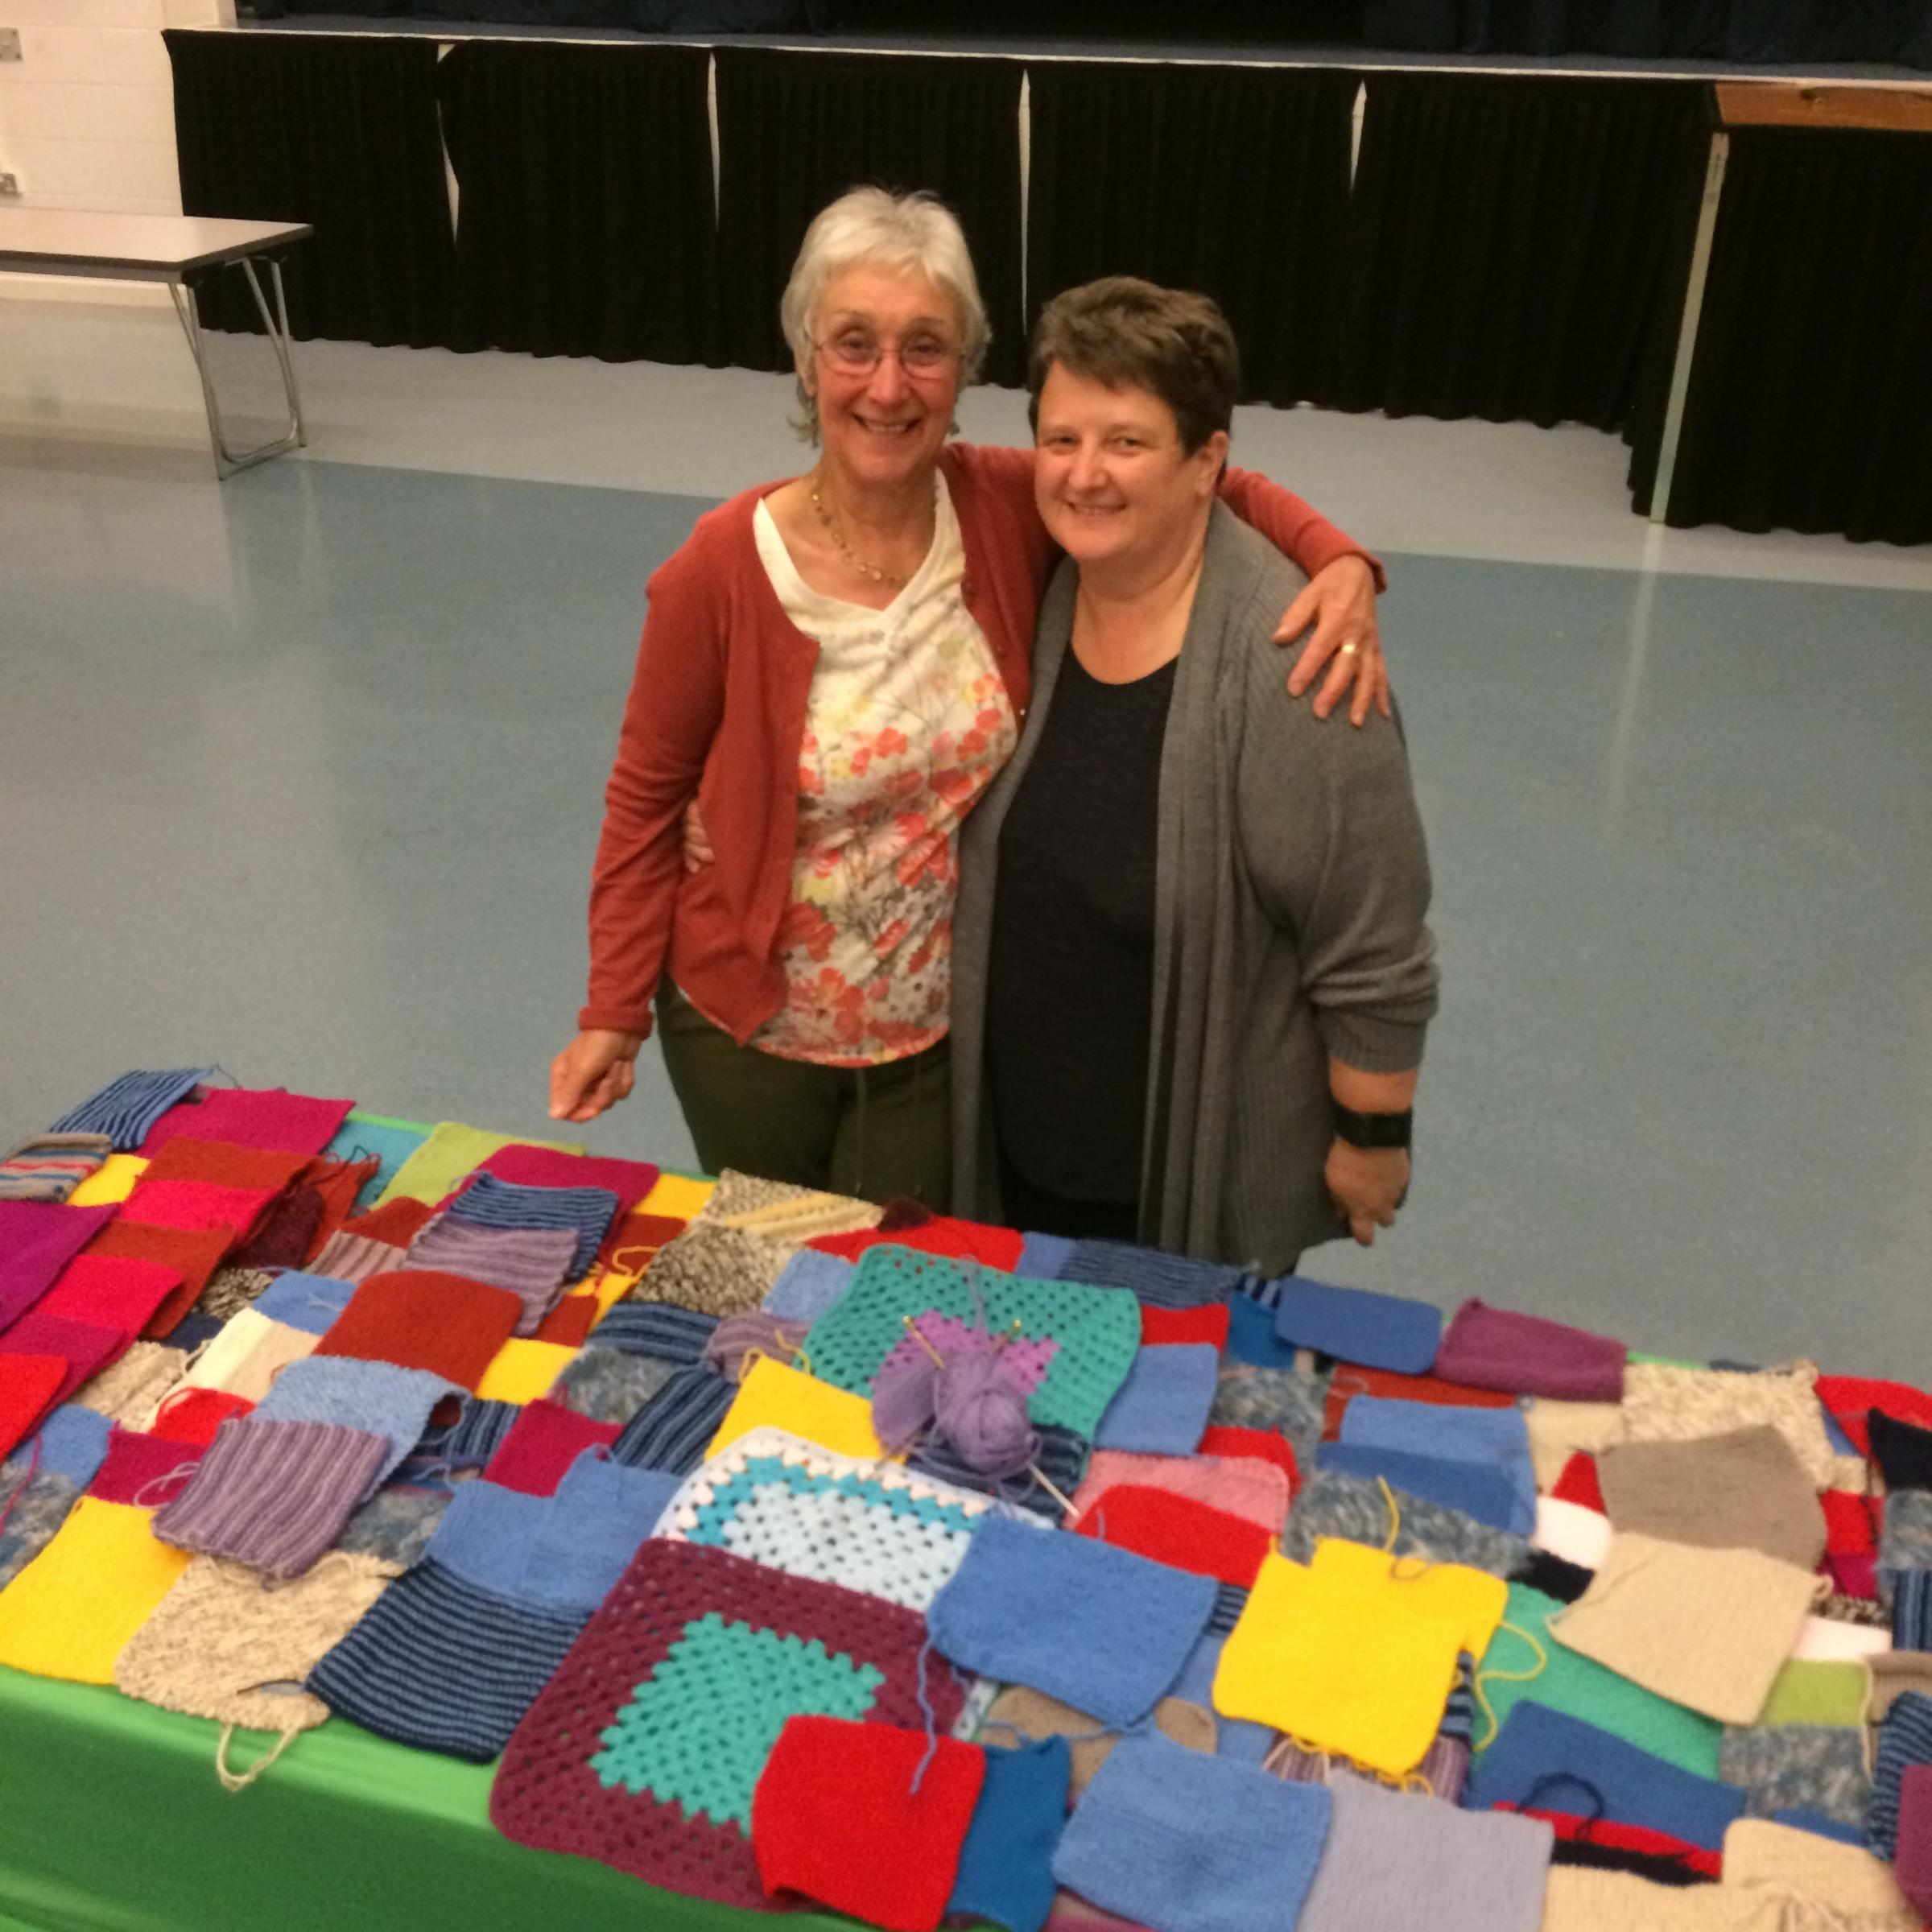 Ruth Davies and Fiona Catada, volunteer helpers at Weight Watchers meeting in Whitecross Hereford High, display some of the knitted squares